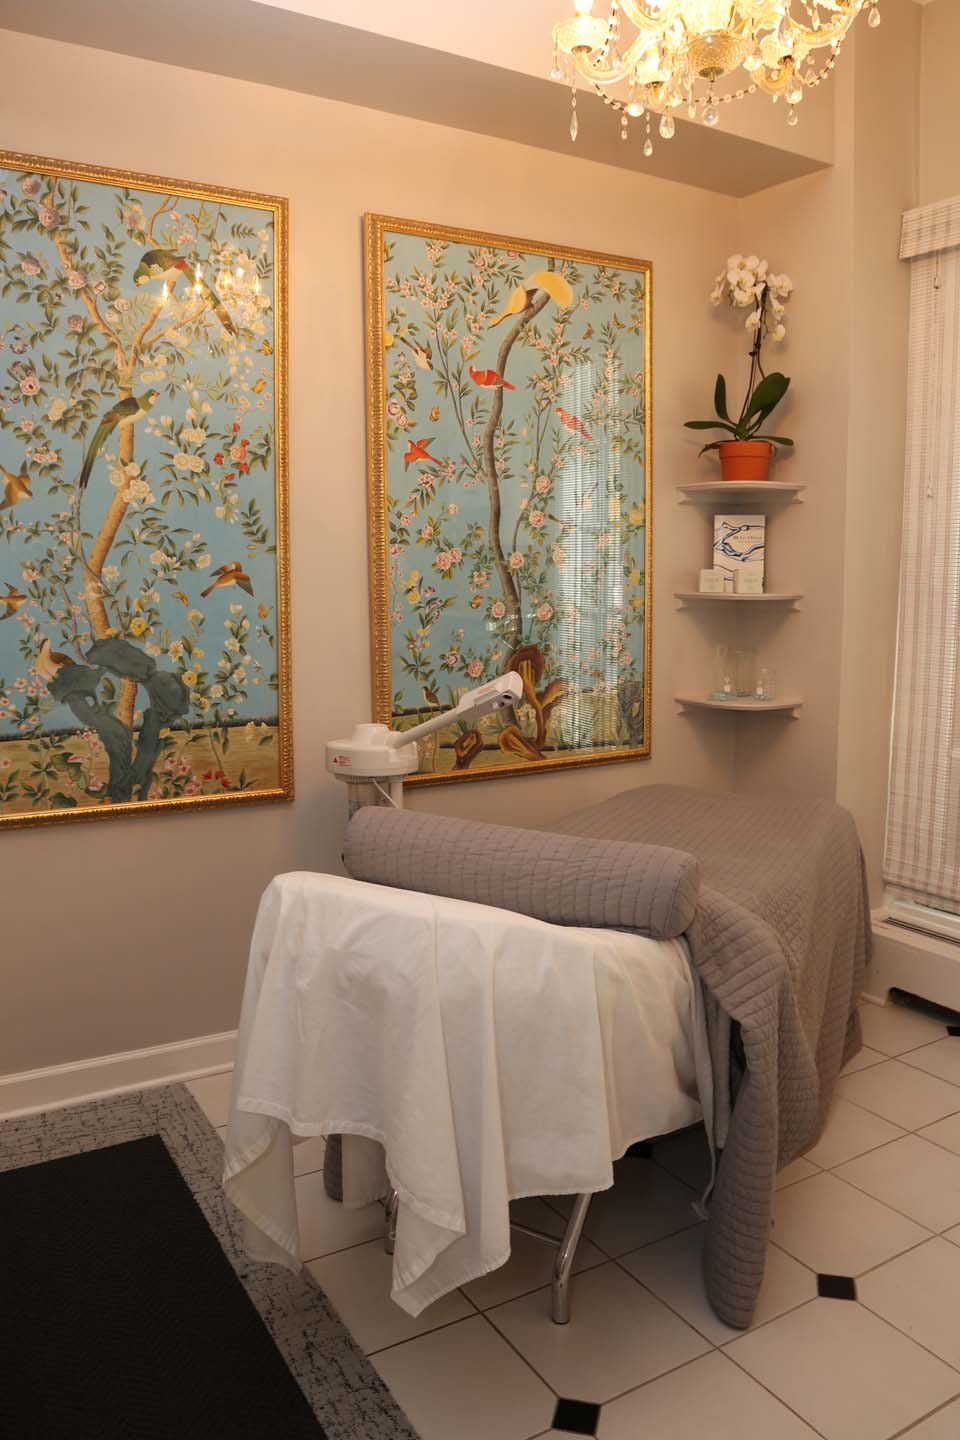 SPA  Whether you are new to waxing and facials, or are a Spa Maven, you'll love our professional, yet welcoming atmosphere. Let us wax, soothe, shape and invigorate your skin.